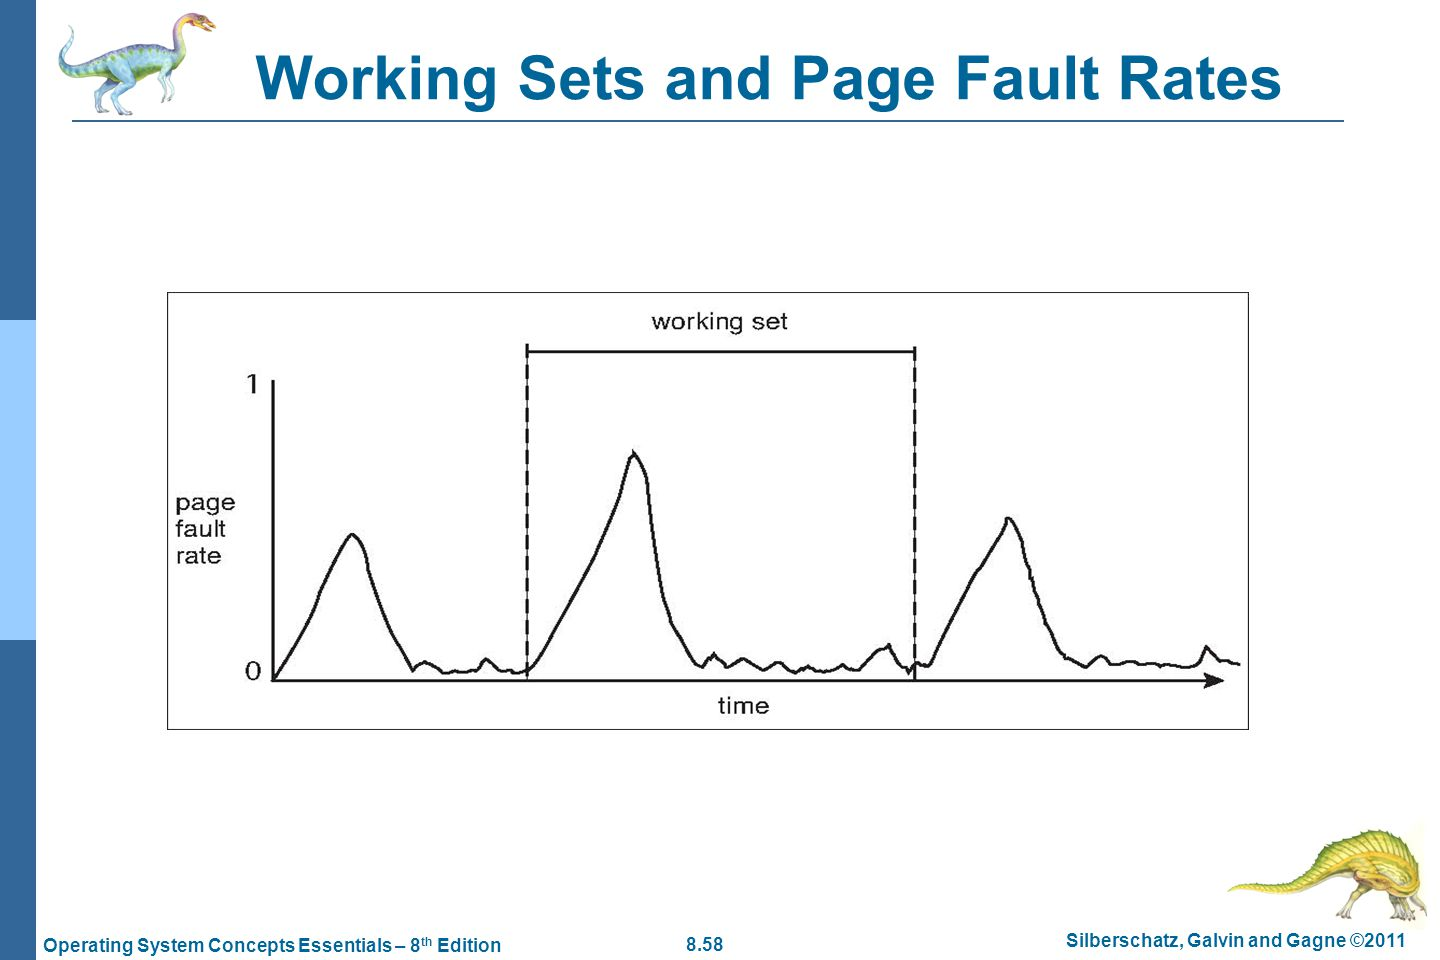 Working Sets and Page Fault Rates